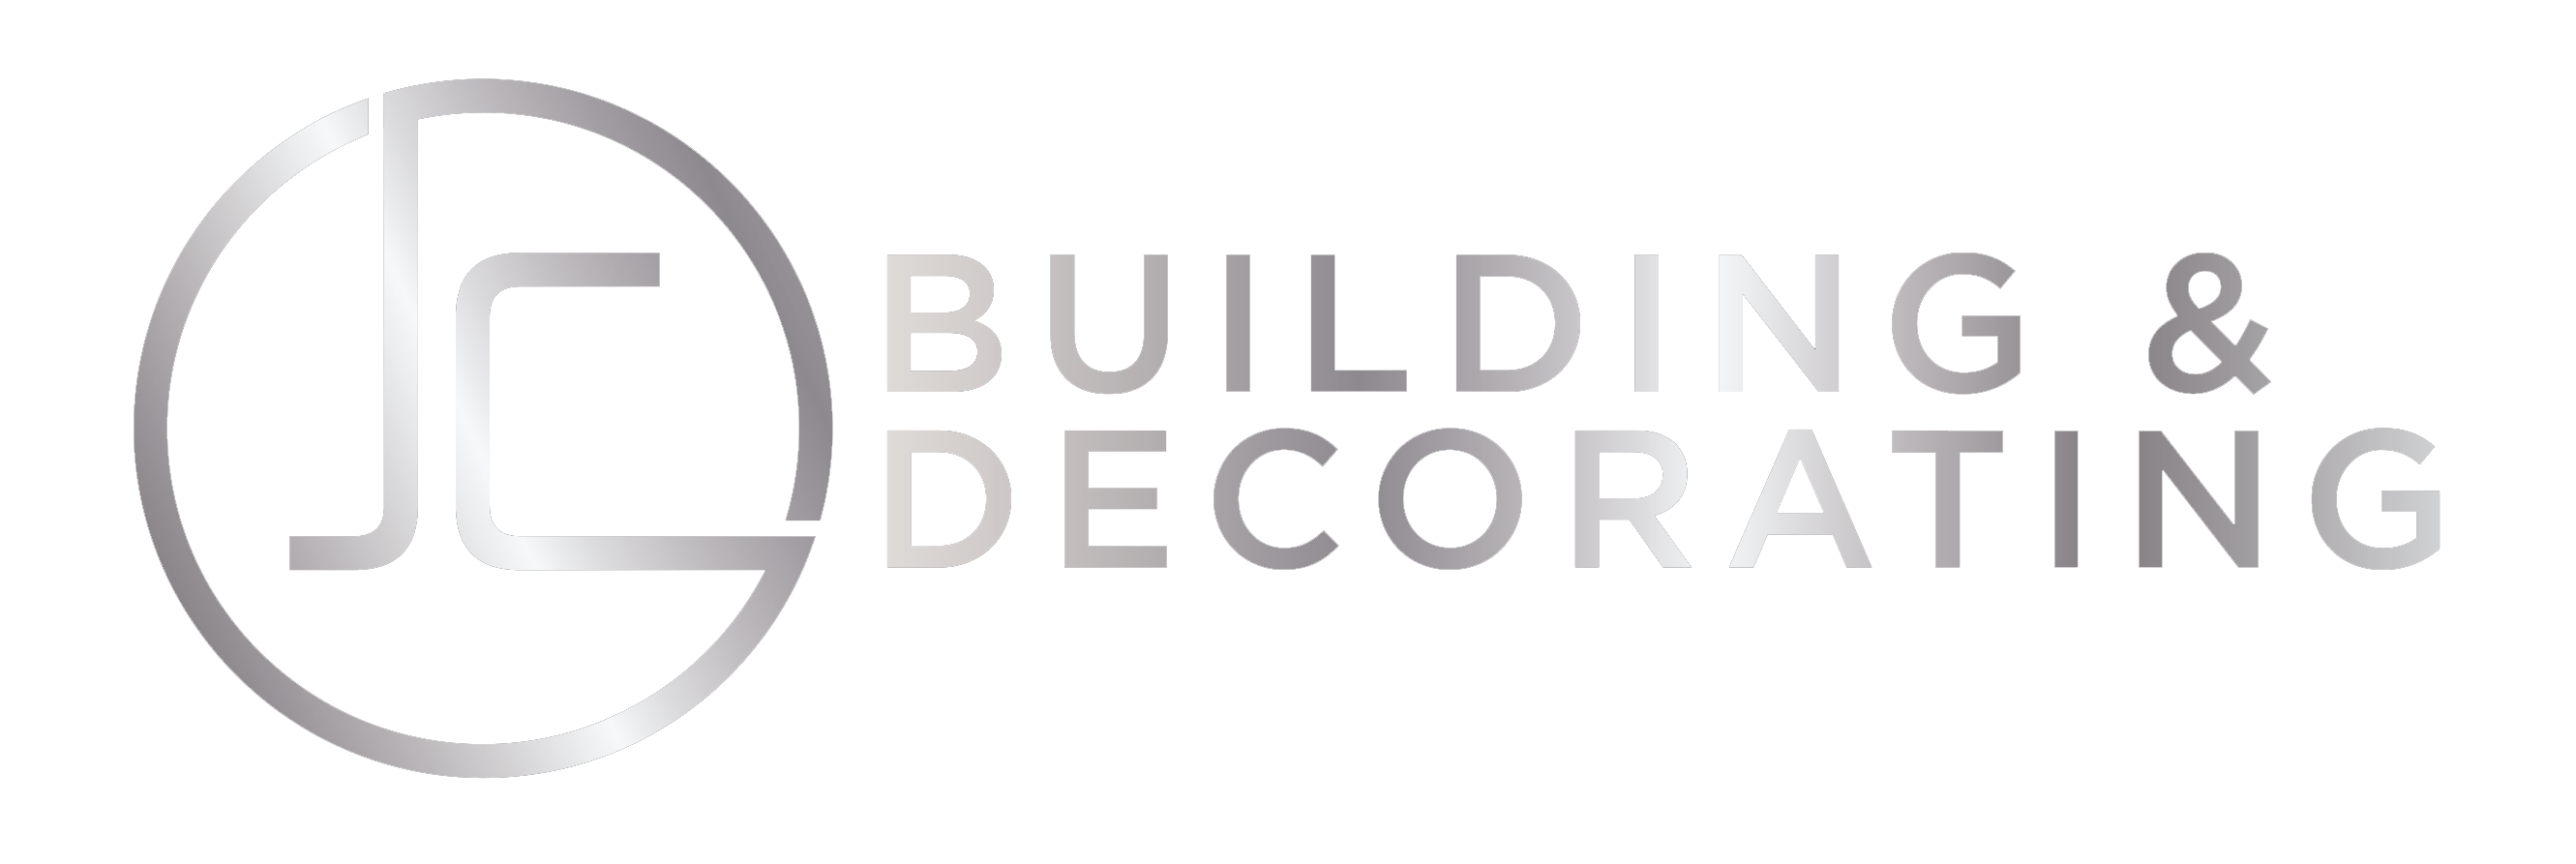 JC Builders and Decorators